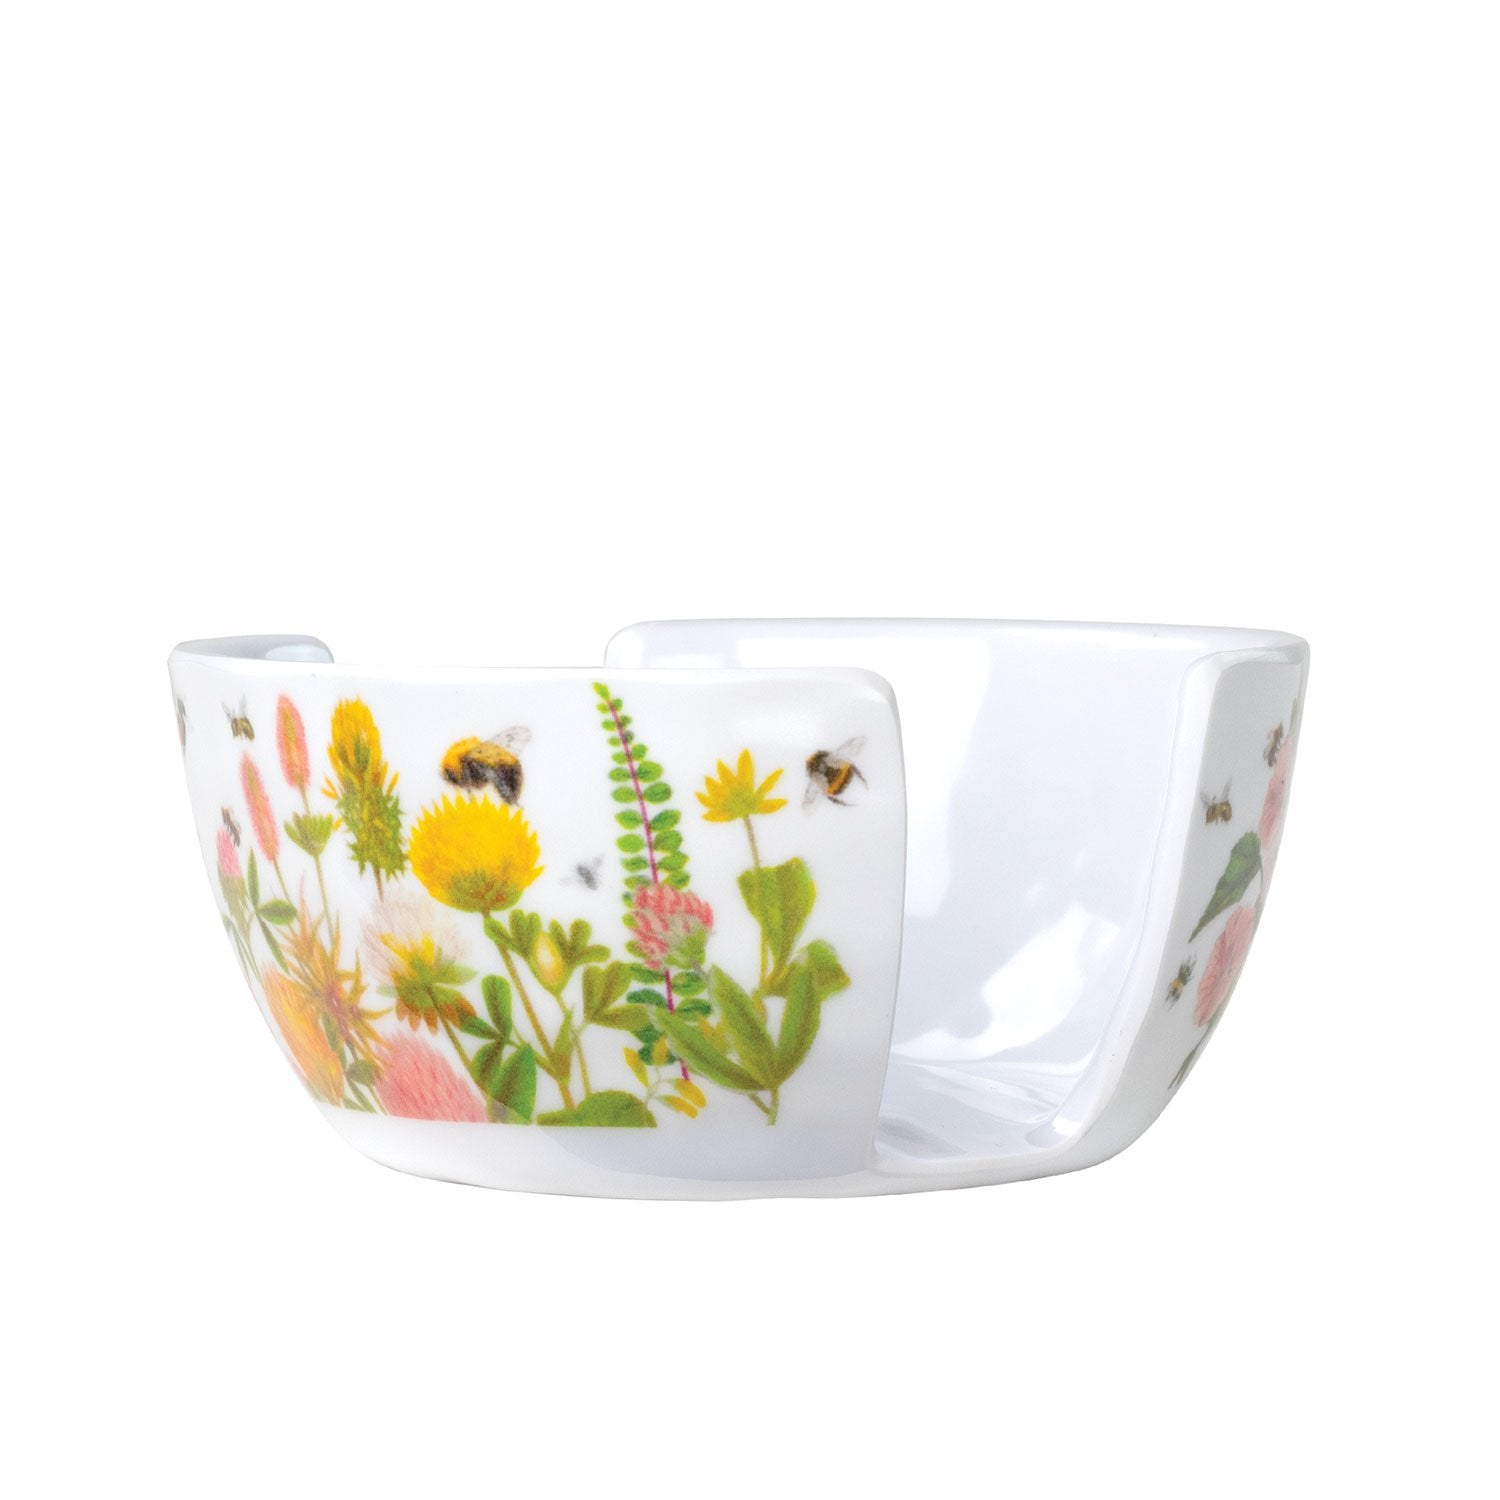 Honey & Clover Melamine Serveware Sponge Holder